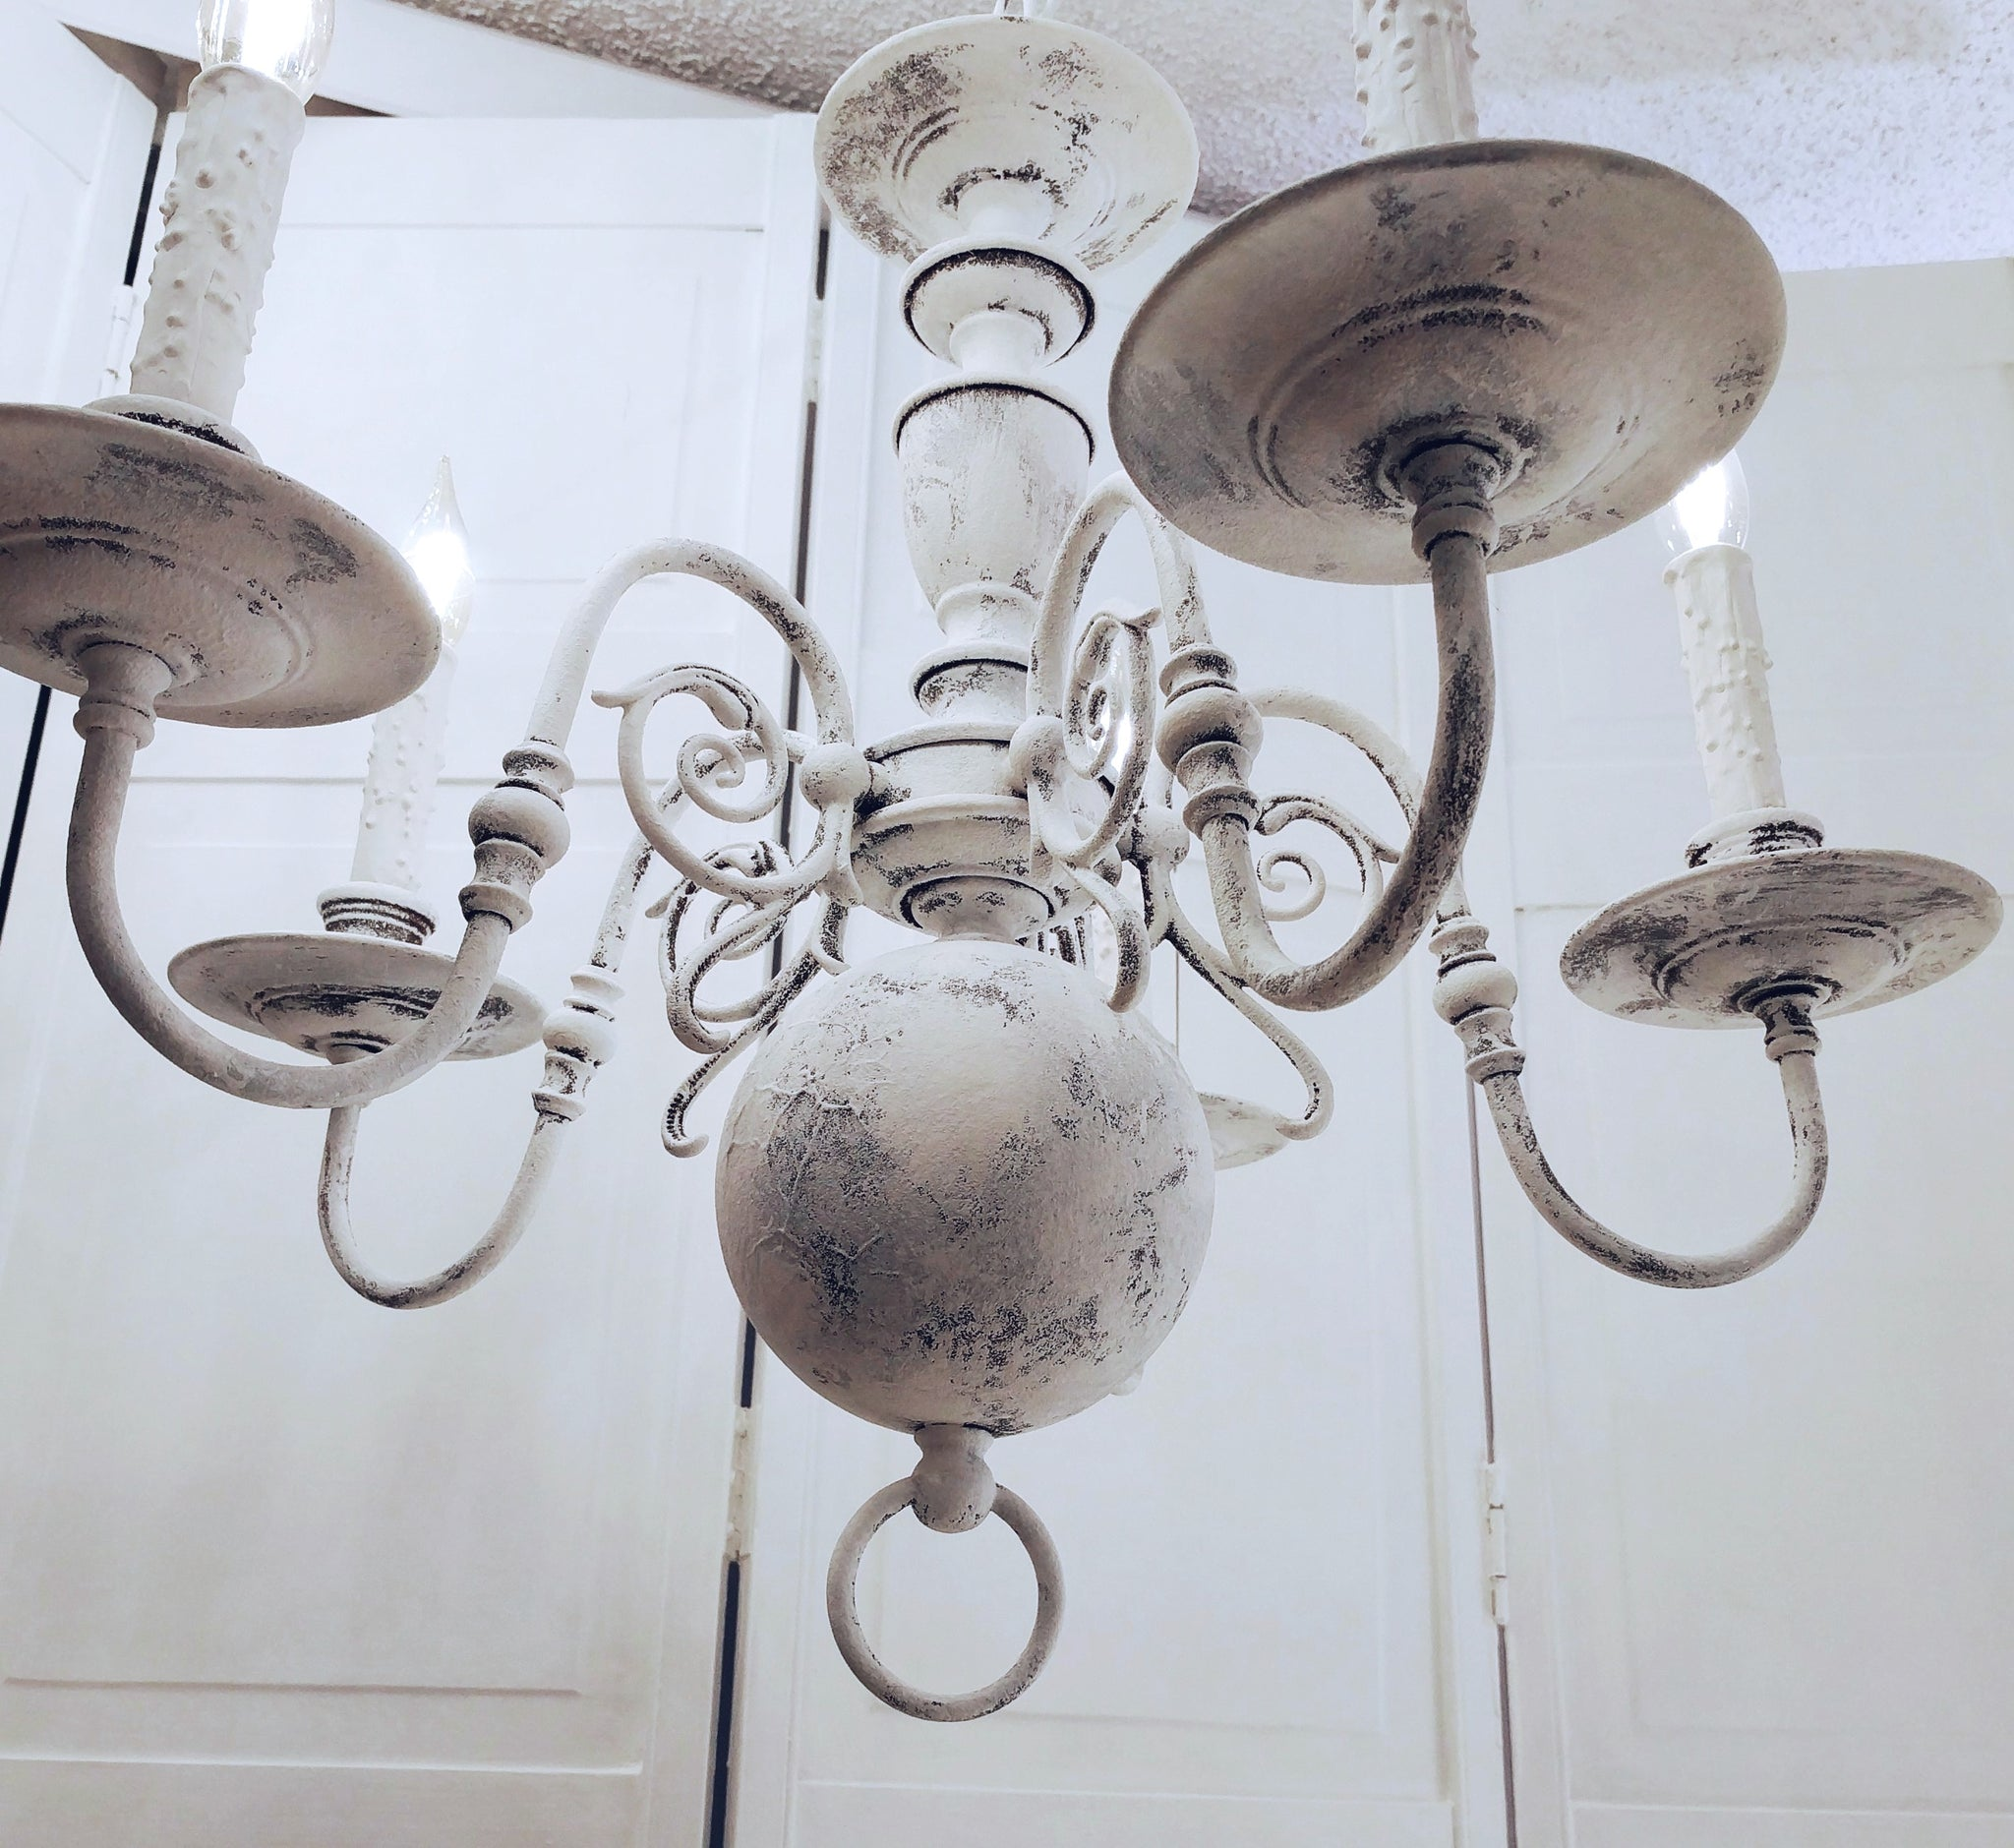 country chic lighting. Wonderful Lighting French Country Chandelier Lighting Vintage Whitewashed Shabby Chic  Rustic  For Country Chic Lighting D